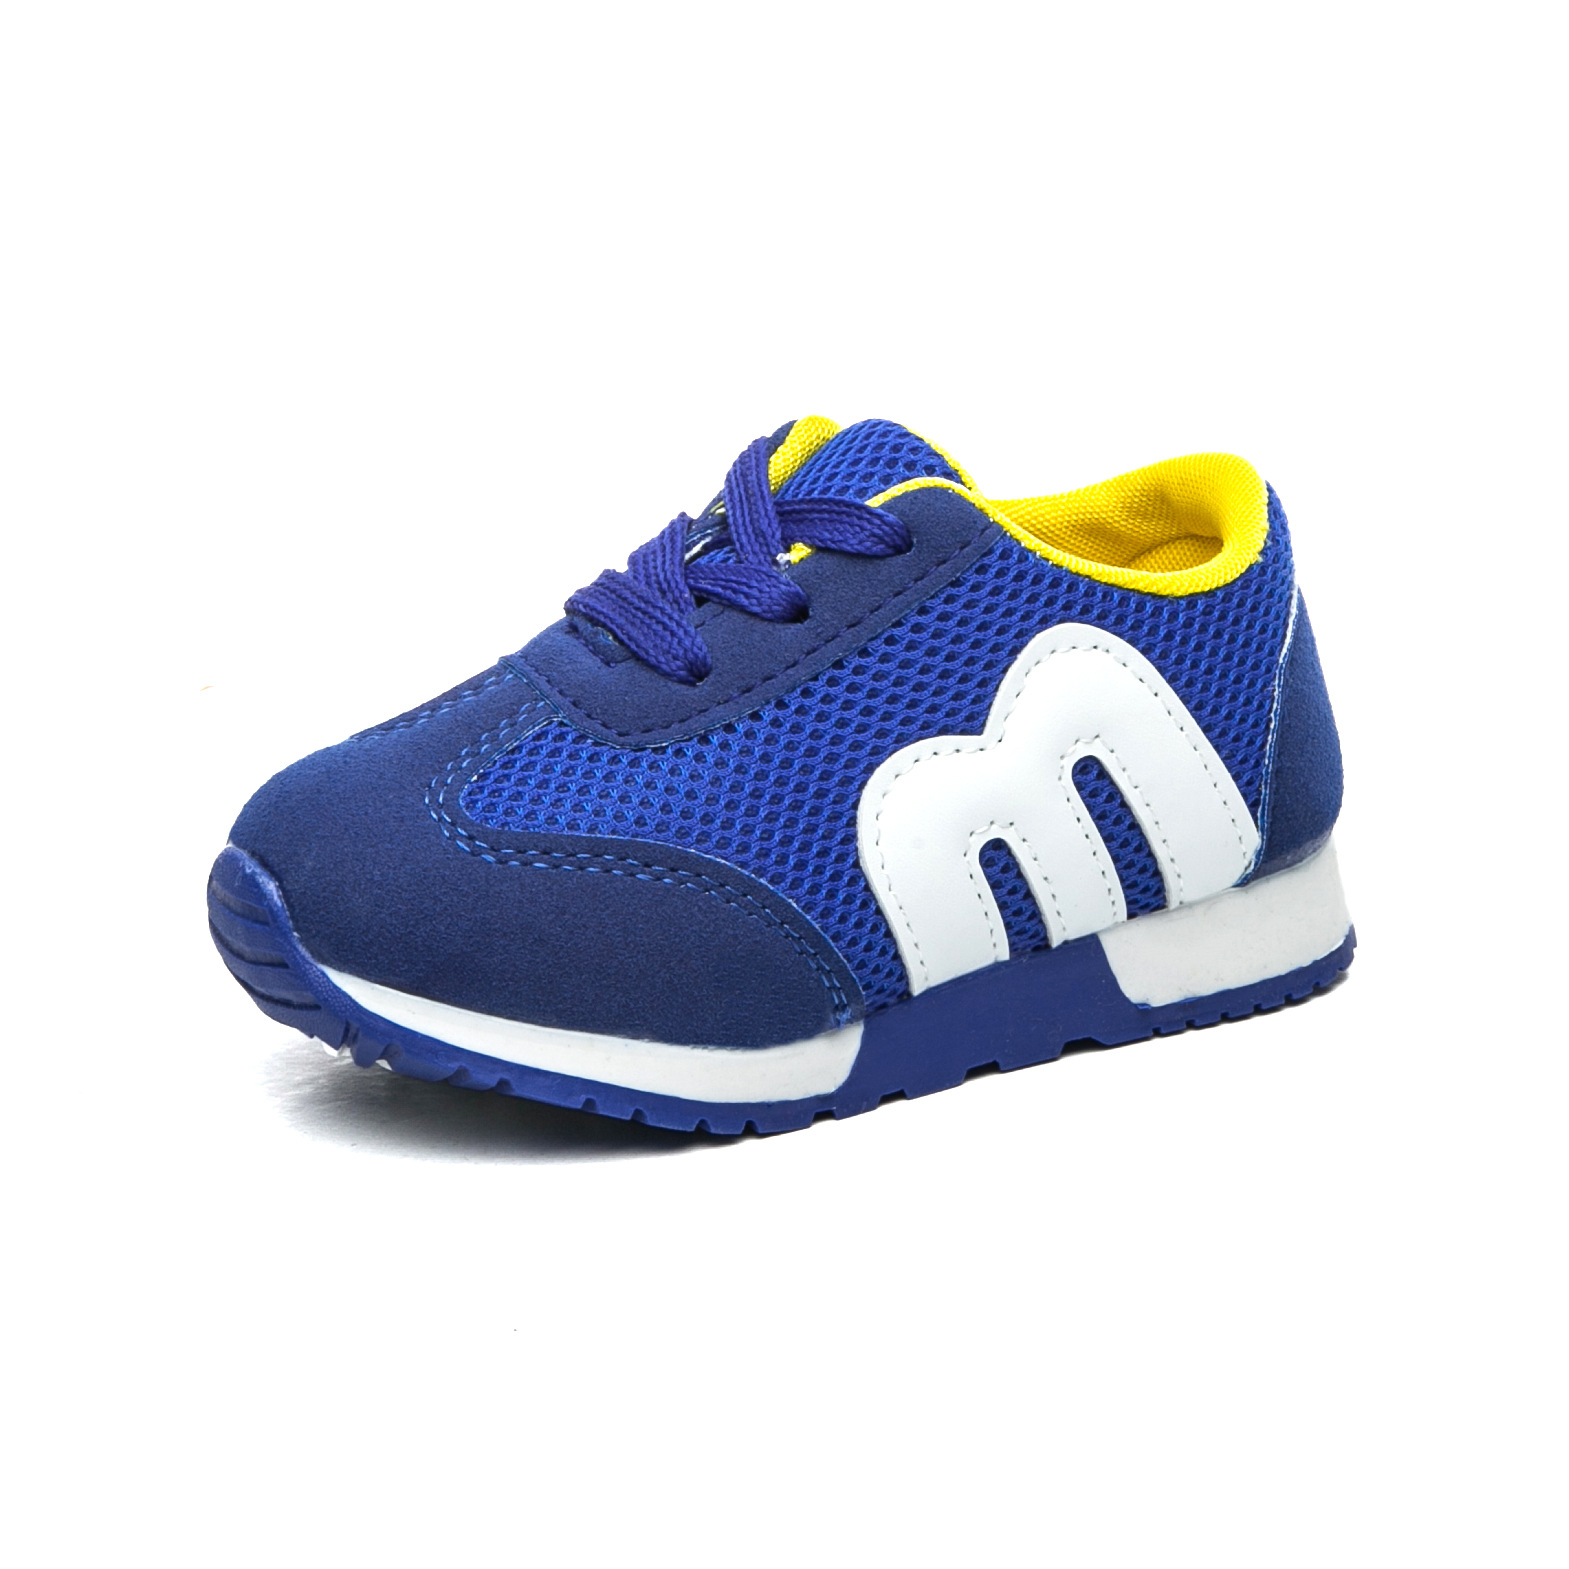 SKOEX Kids Sneakers Girls Boys Lightweight Sport Running Shoes Mesh Breathable Soft Babys Childrens Casual Walking Tennis Shoes